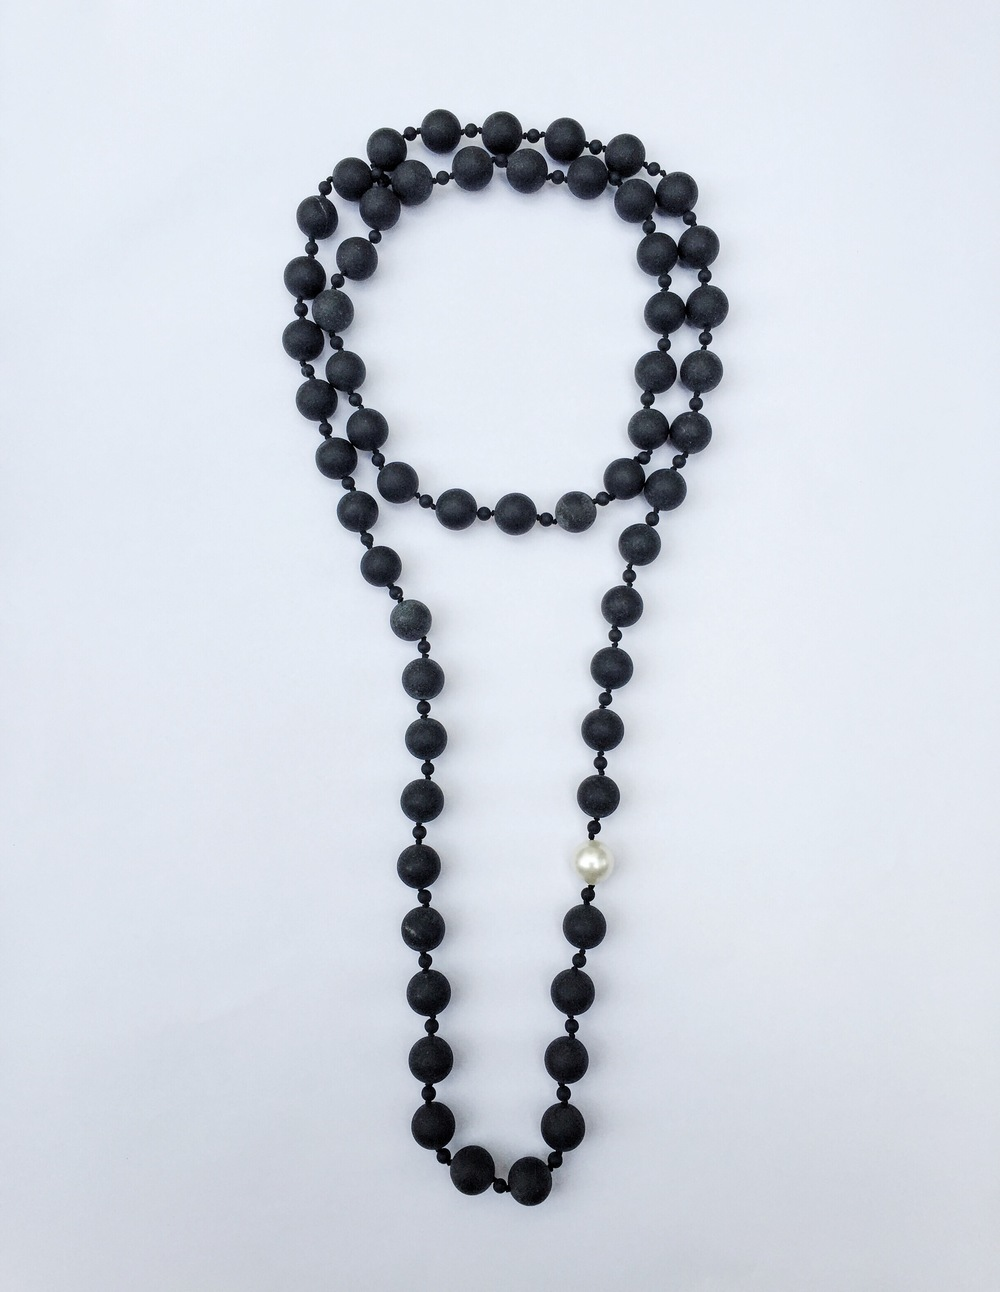 sneakers and pearls, jewelry, black onyx necklace with a fresh water pearl,trending now.JPG